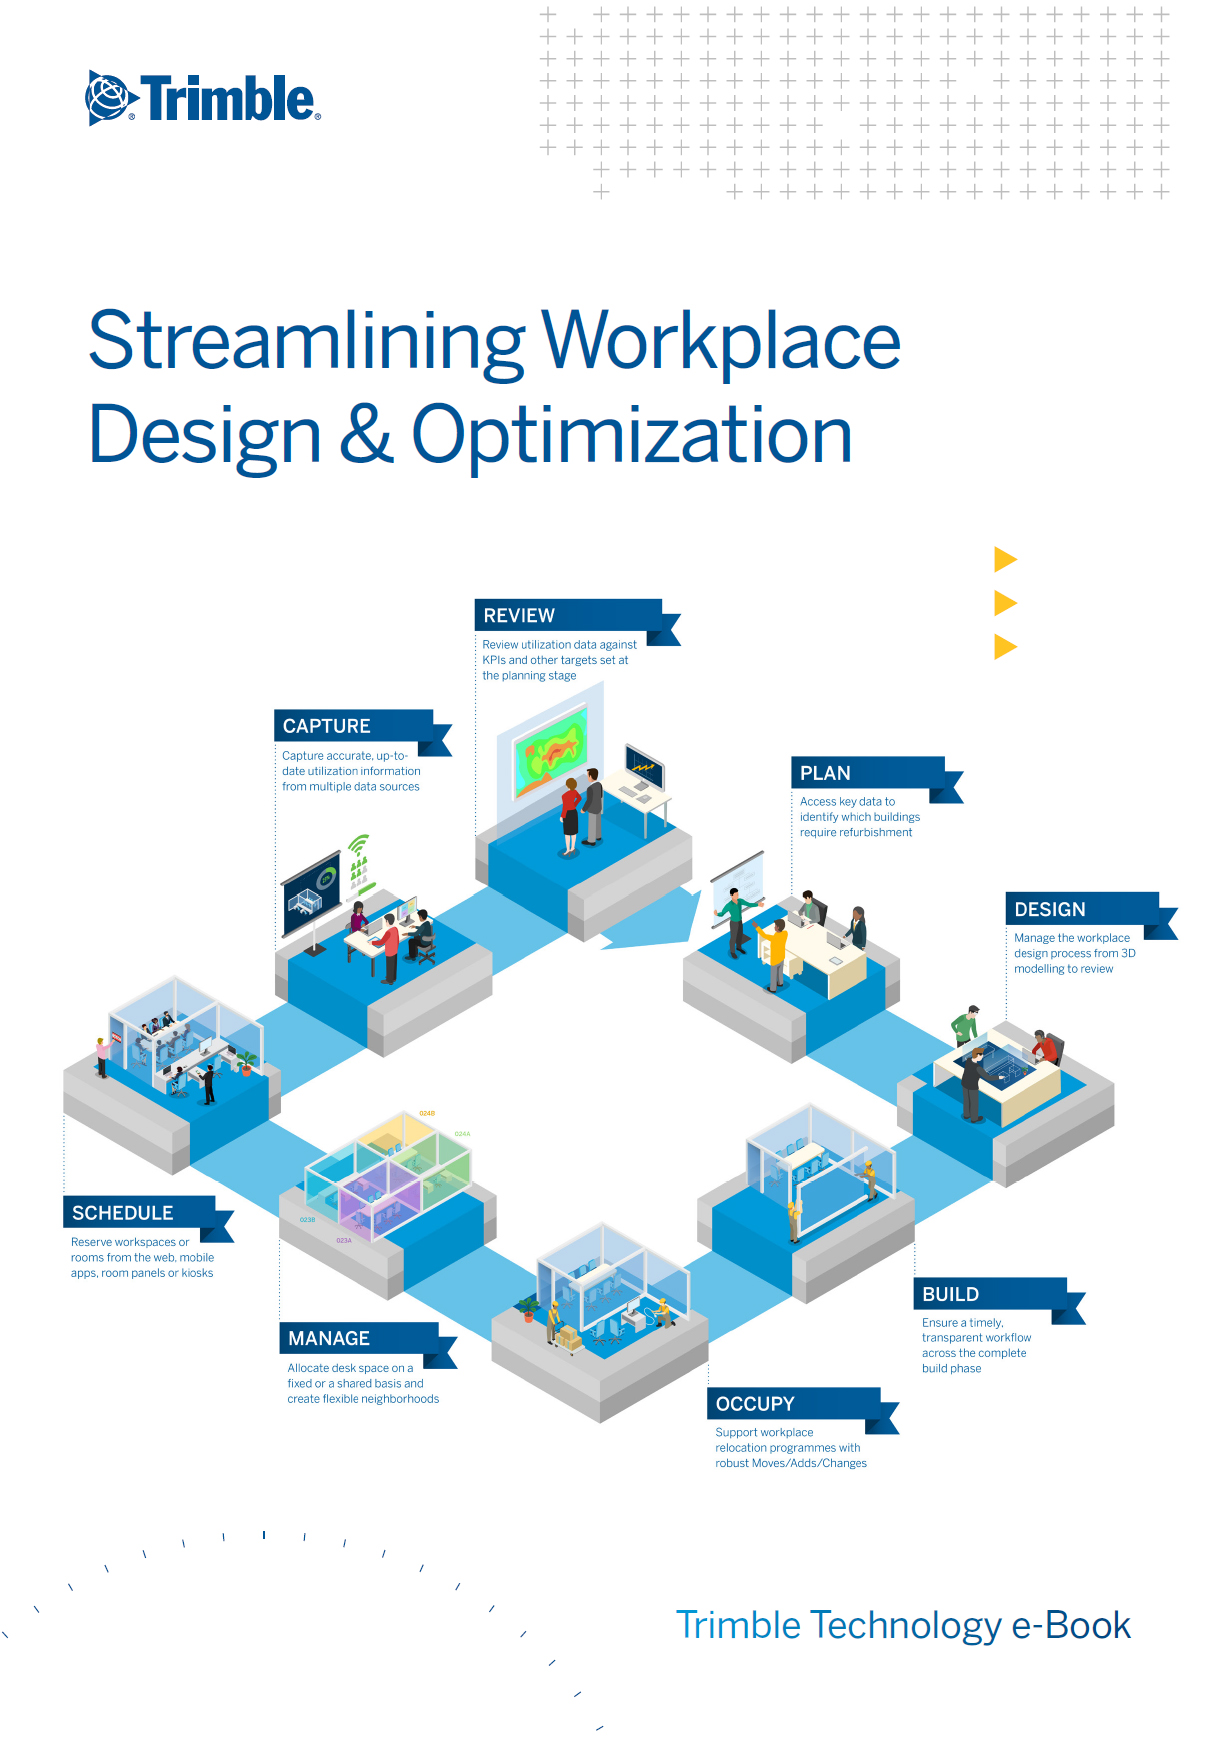 Managing the Workplace Design & Optimization Lifecycle